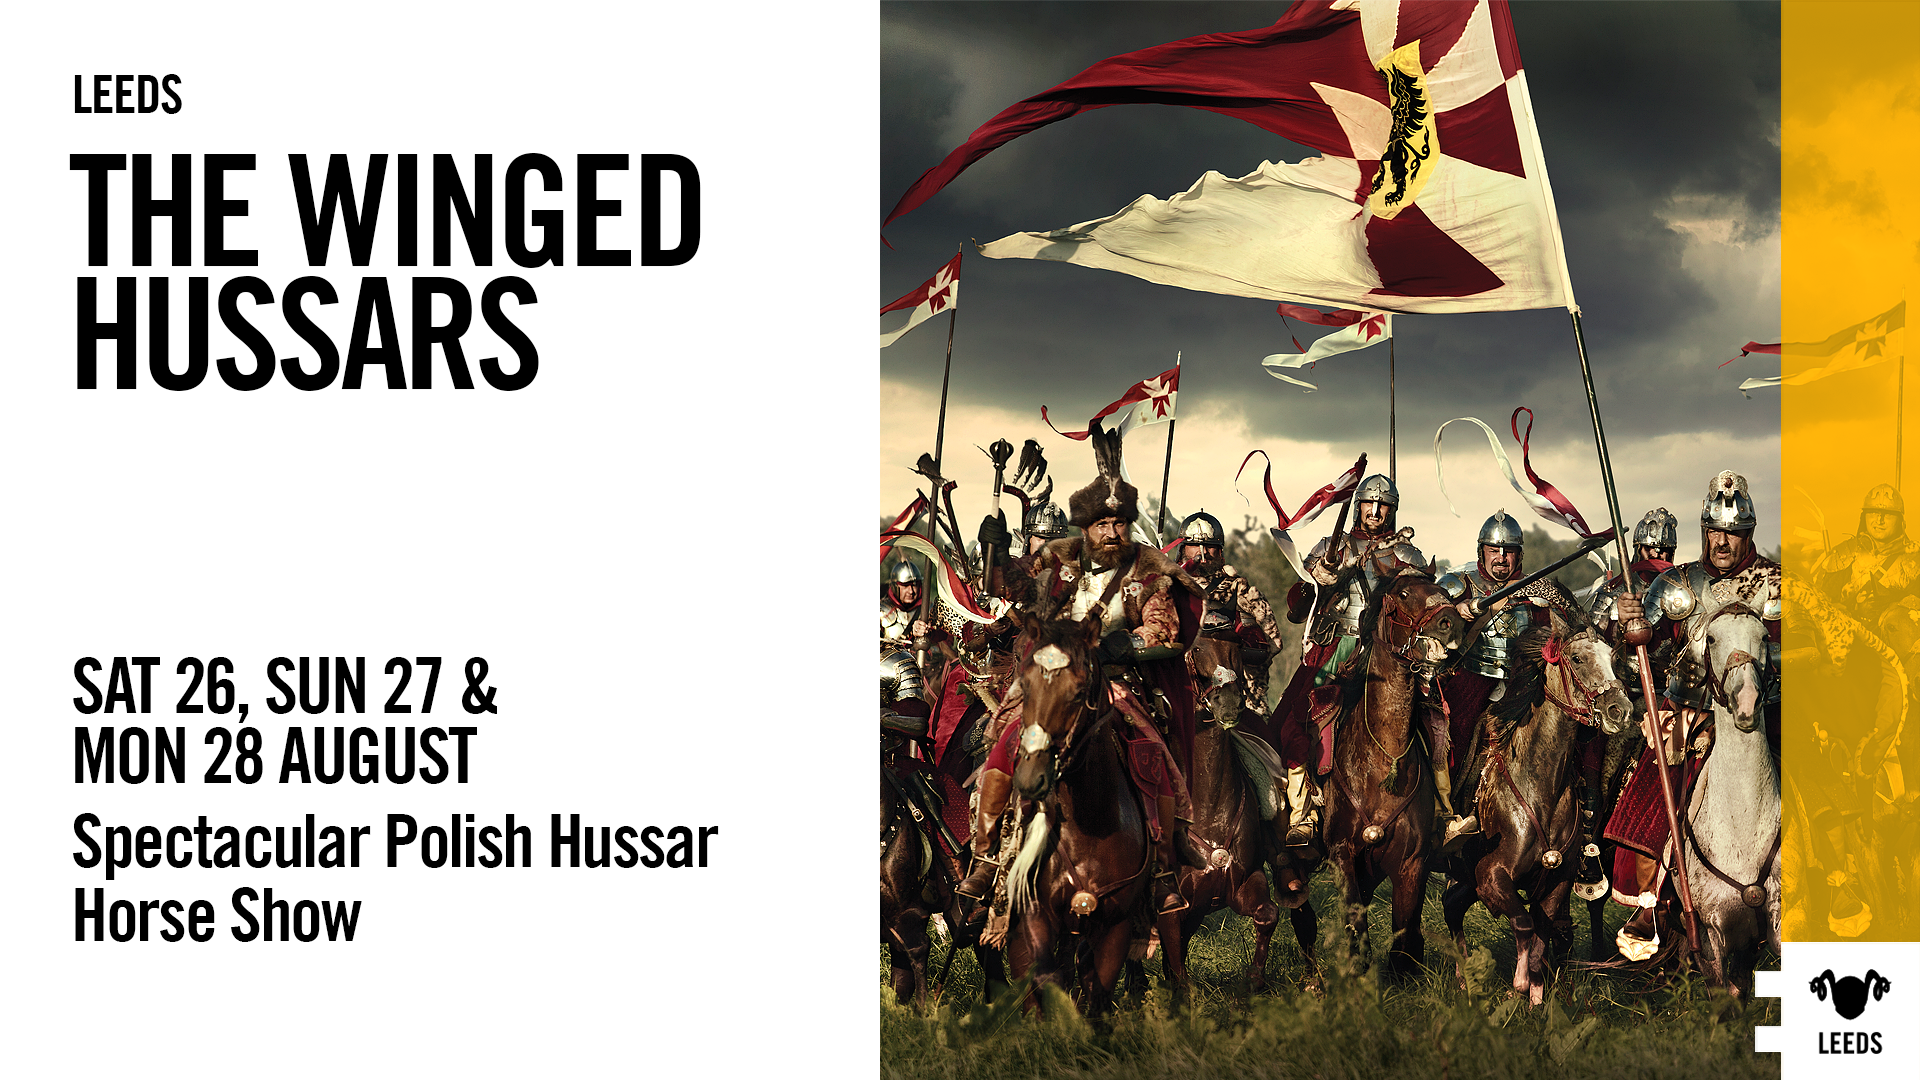 THE WINGED HUSSARS HORSE SHOW